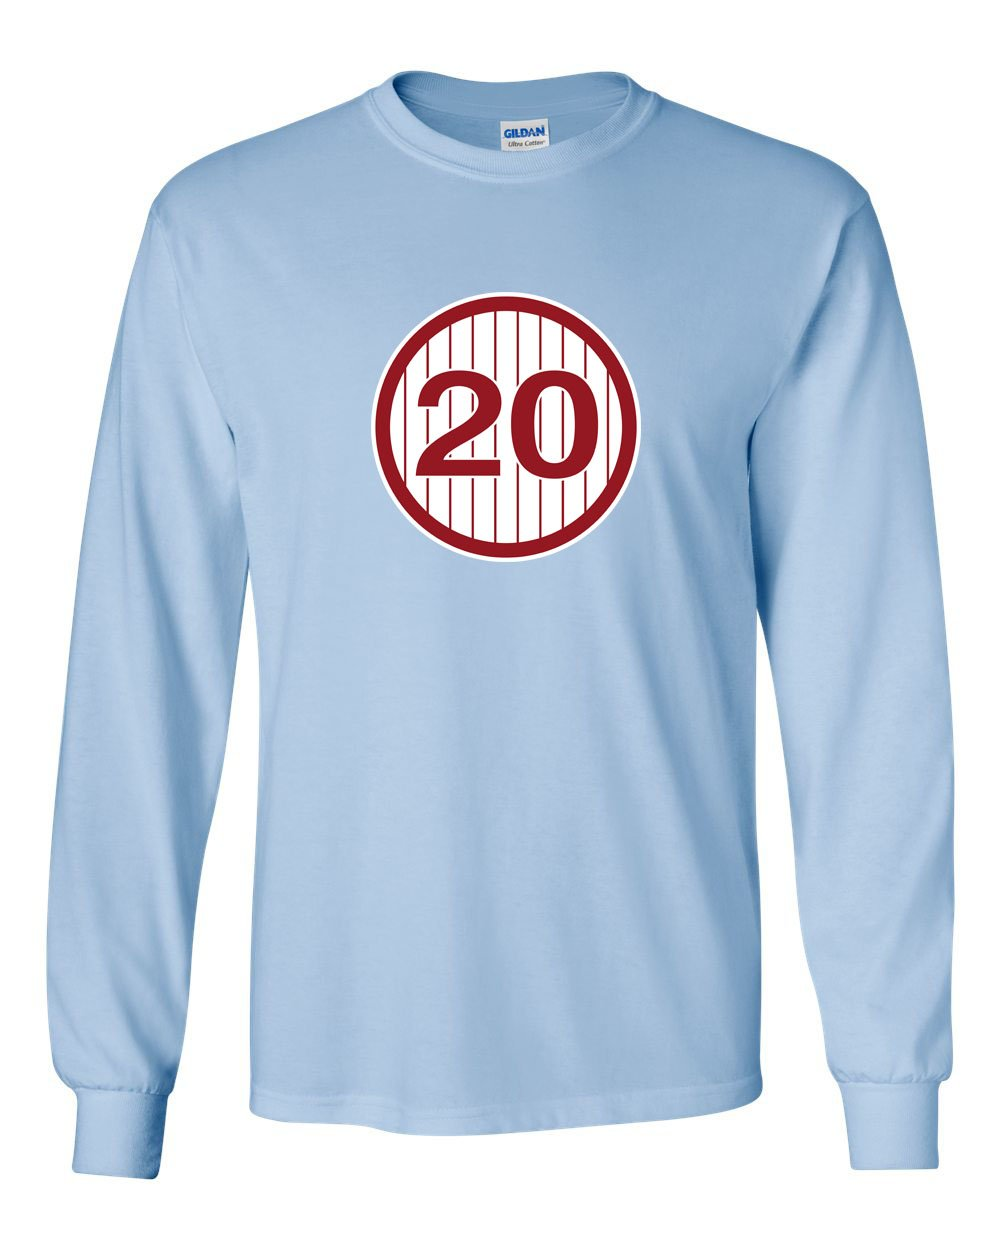 #20 MENS Long Sleeve Heavy Cotton T-Shirt